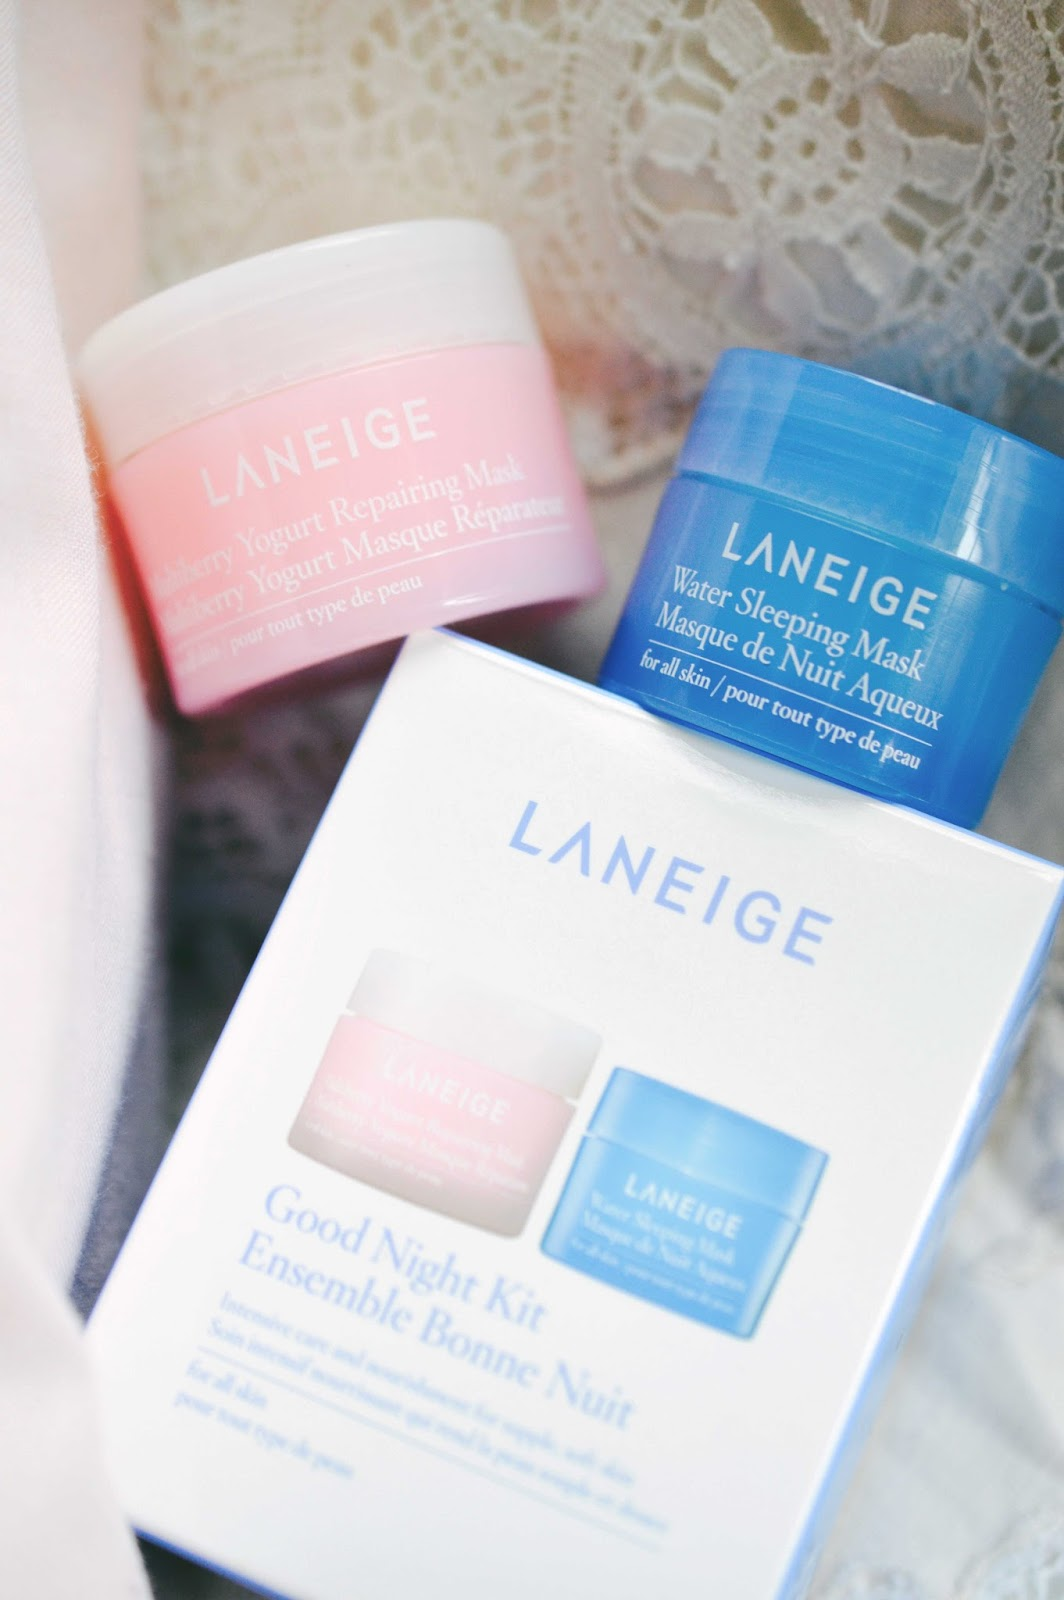 Laneige Amorepacific